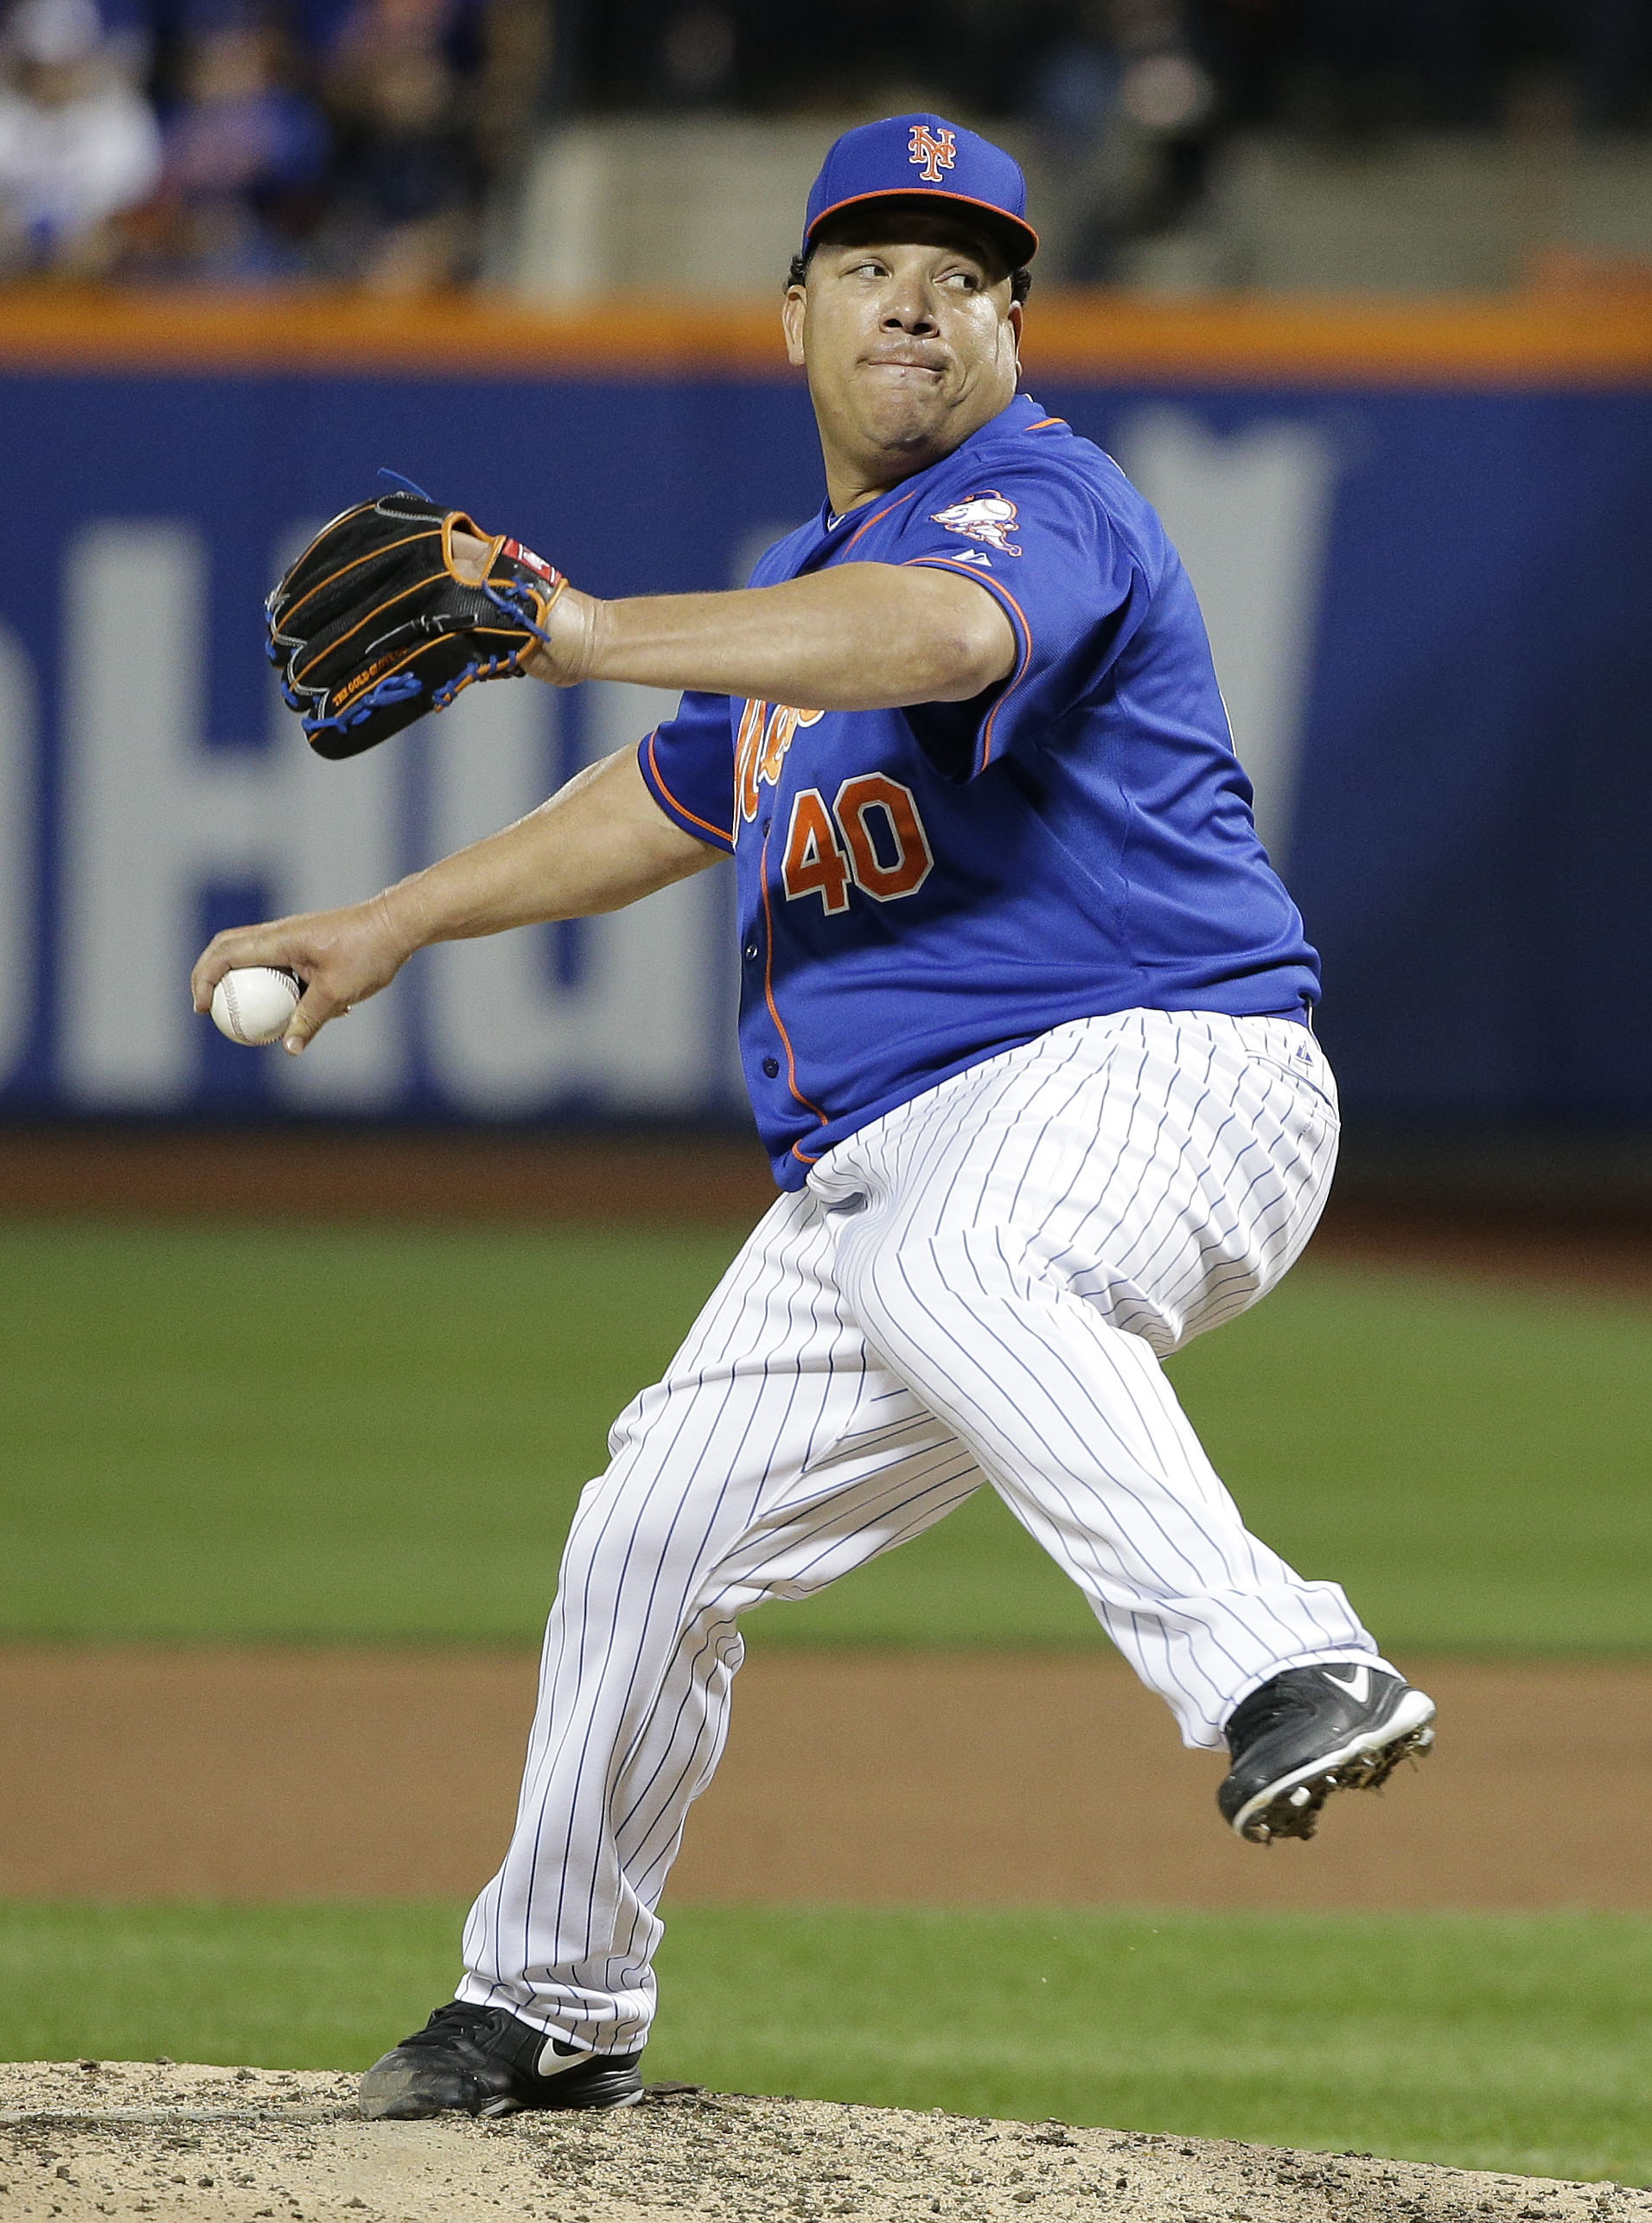 FILE - In this Monday, Oct. 12, 2015 file photo, New York Mets pitcher Bartolo Colon (40) delivers against the Los Angeles Dodgers during the sixth inning of baseball's Game 3 of the National League Division Series in New York. A person familiar with the